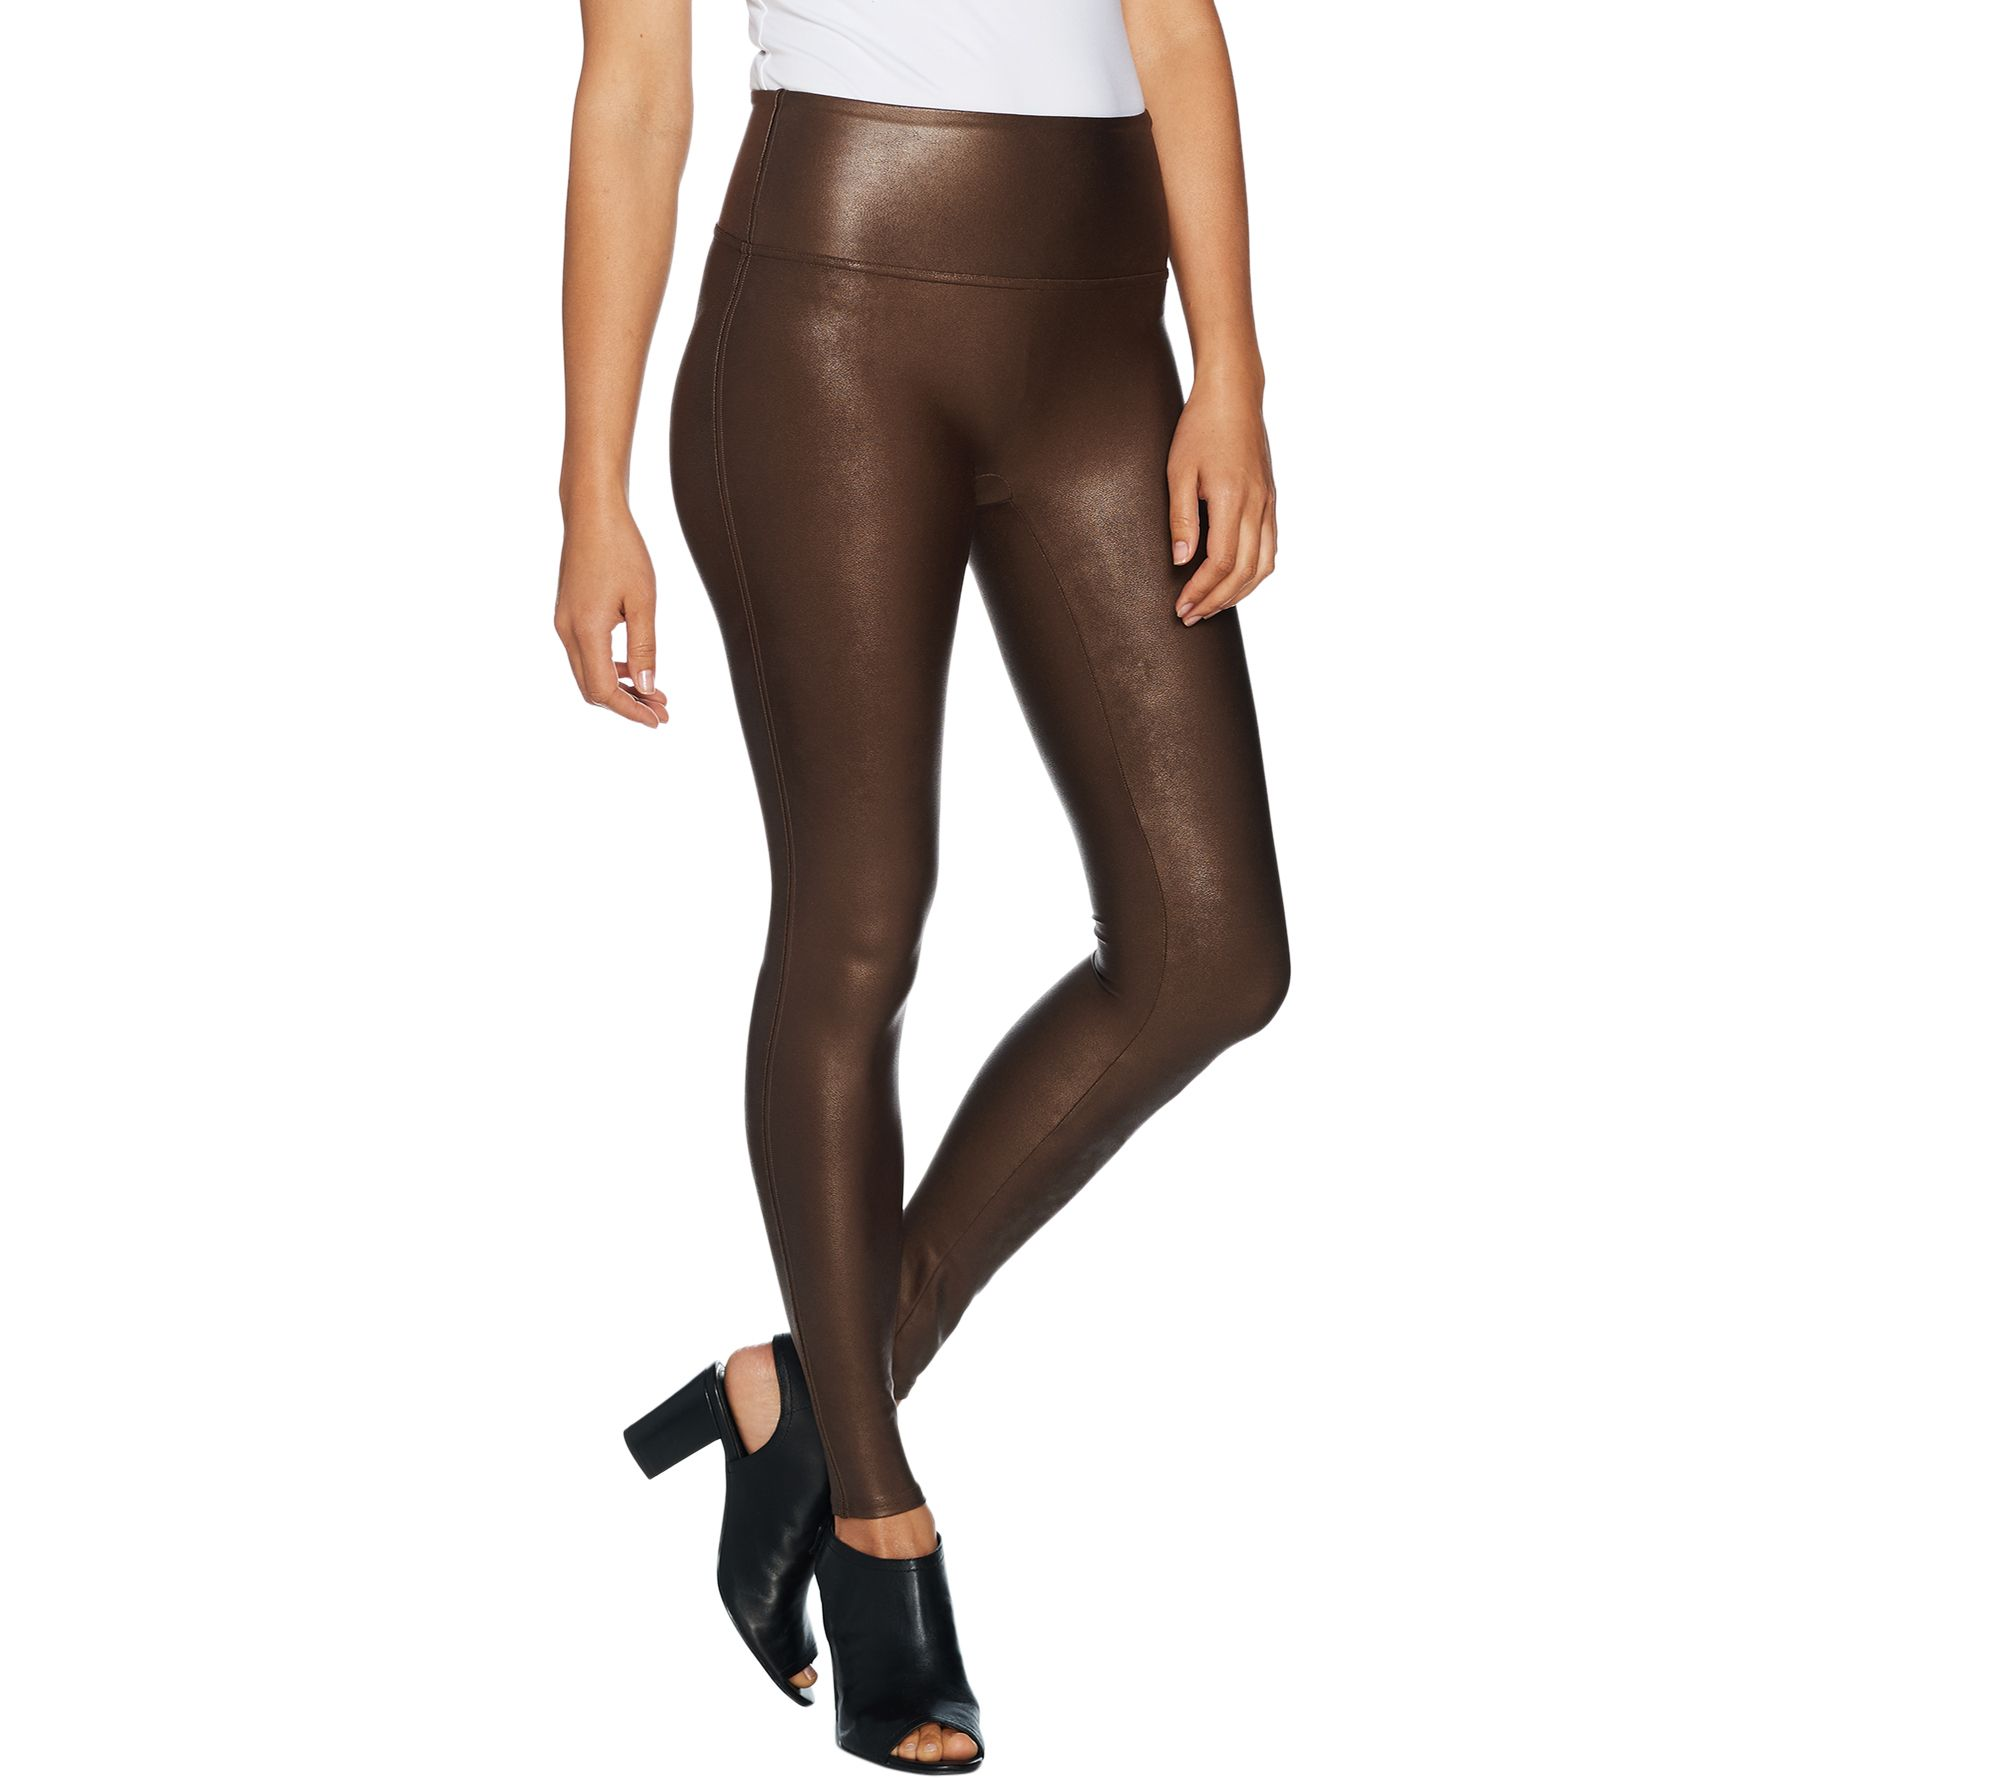 4599ea4cbf1 Spanx Faux Leather Leggings - Page 1 — QVC.com